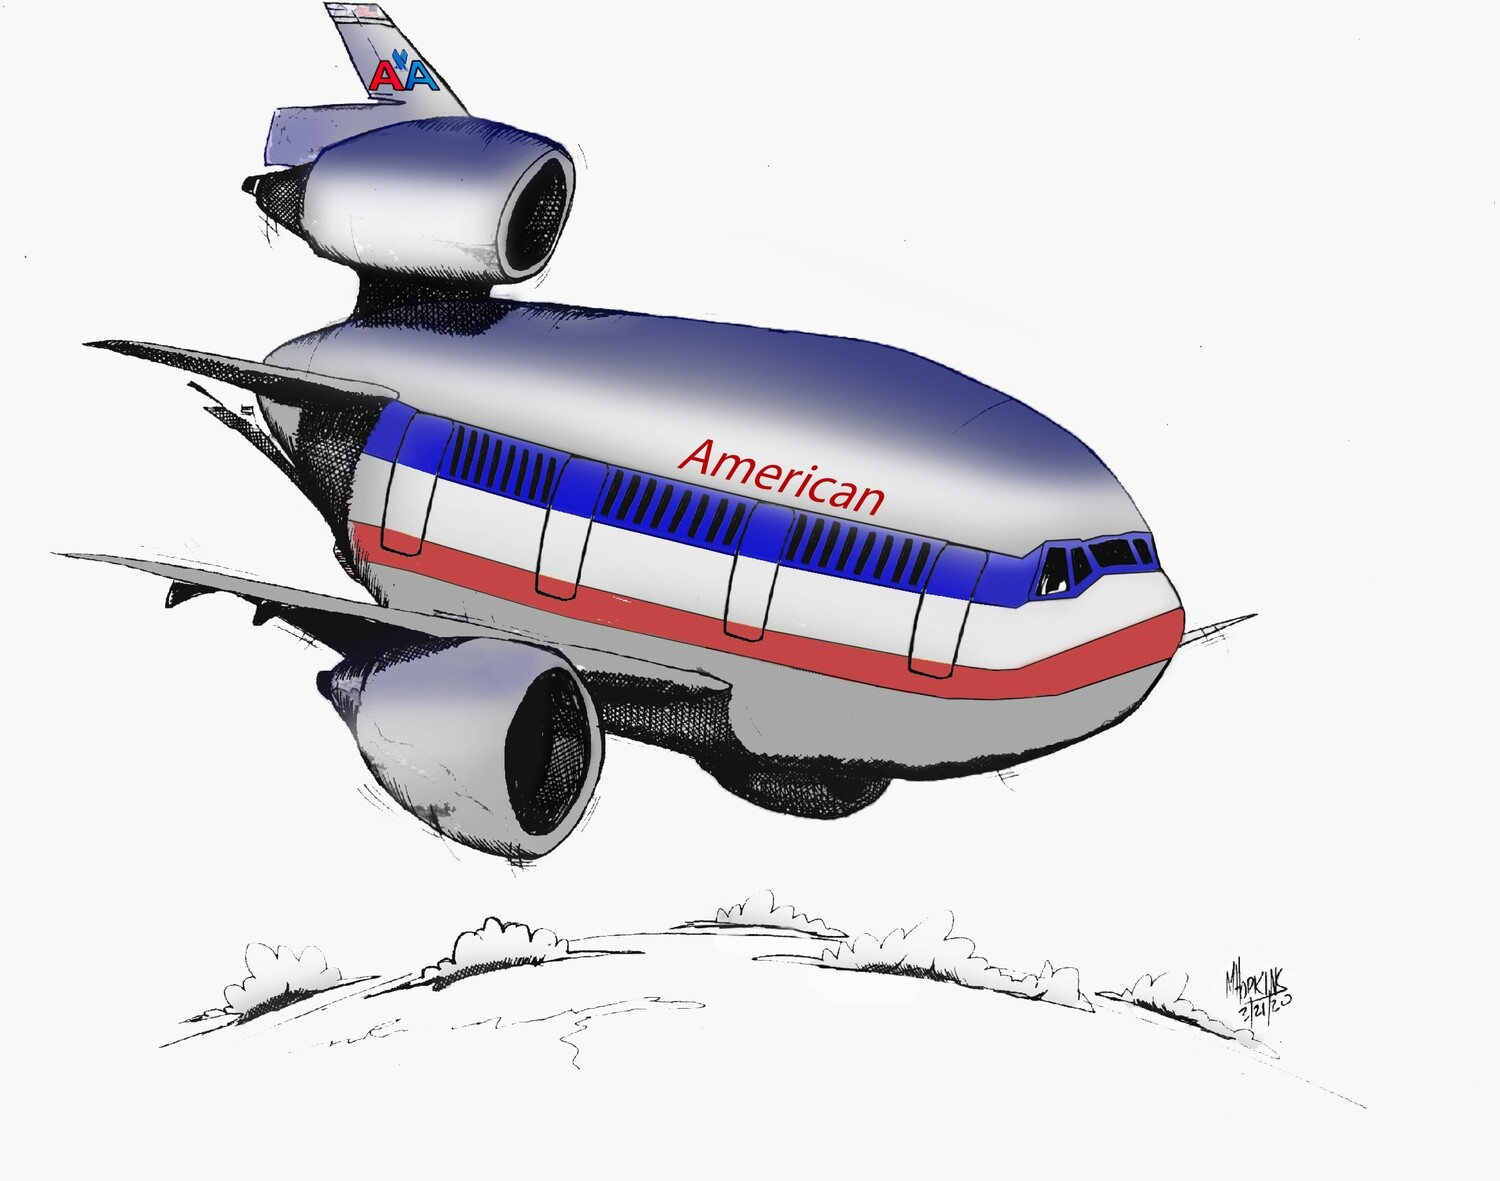 """American Airlines McDonnell Douglass DC-10 Aviation Caricature, 11"""" x 17"""" limited edition, signed print by Michael Hopkins"""